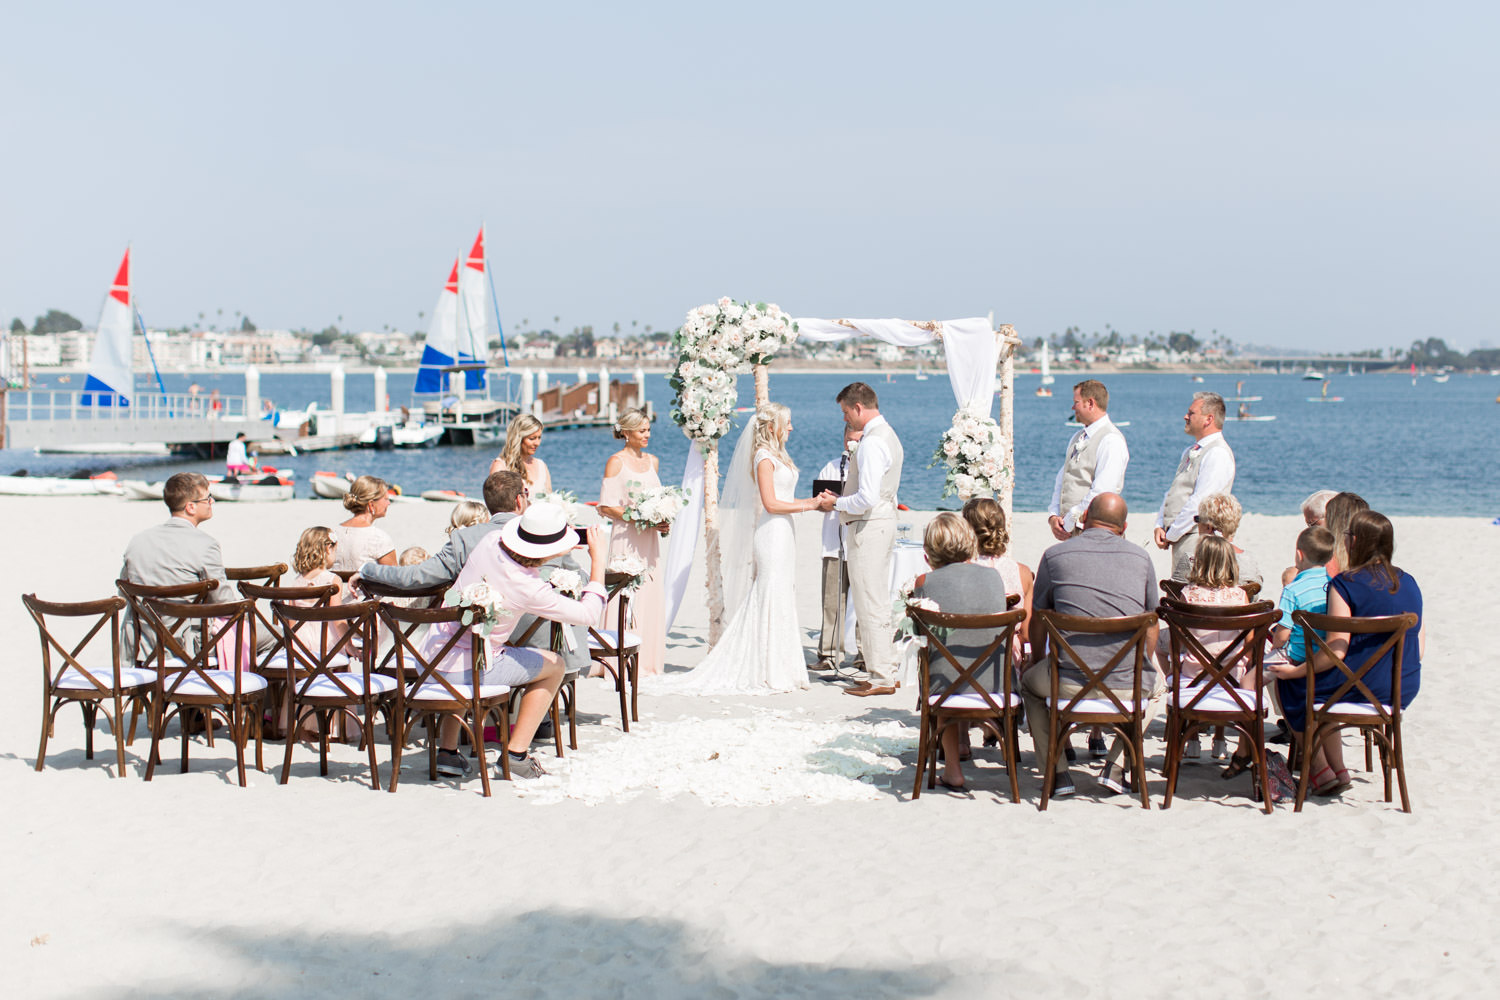 Mission Bay ceremony, Intimate San Diego Catamaran Resort Wedding on Mission Bay by Cavin Elizabeth